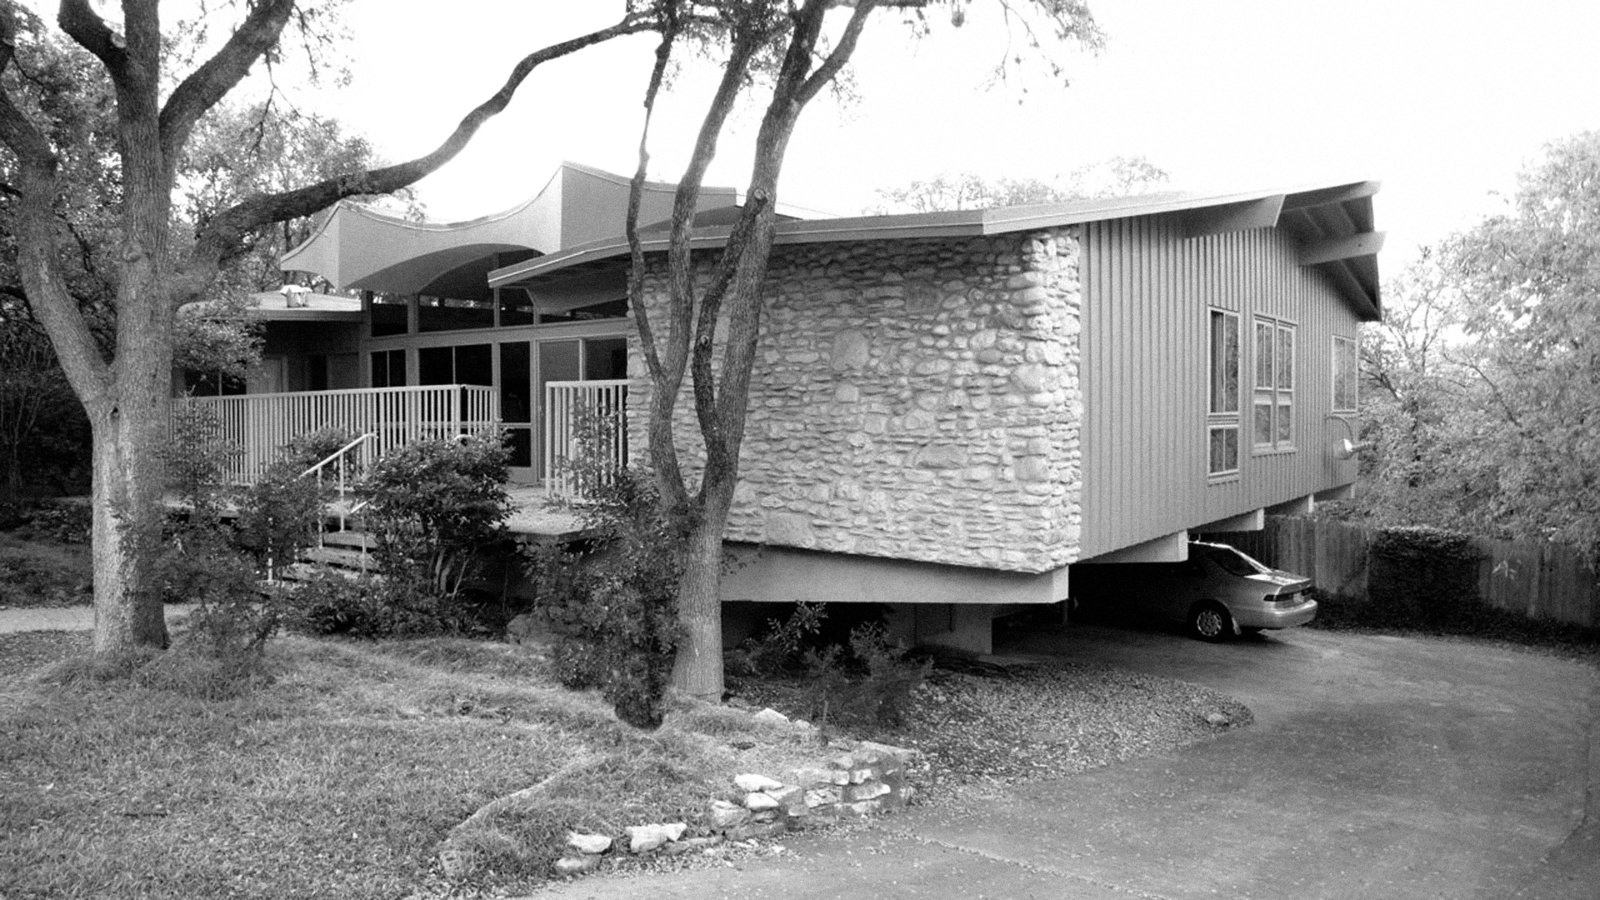 Architect A.D. Stenger designed and developed scores of houses in Austin, Texas, including this one, whose Jetsons-esque facade is rumored to reference the aeronautics classes he took in college.  Photo 6 of 11 in A Renovated Midcentury Gem in Austin